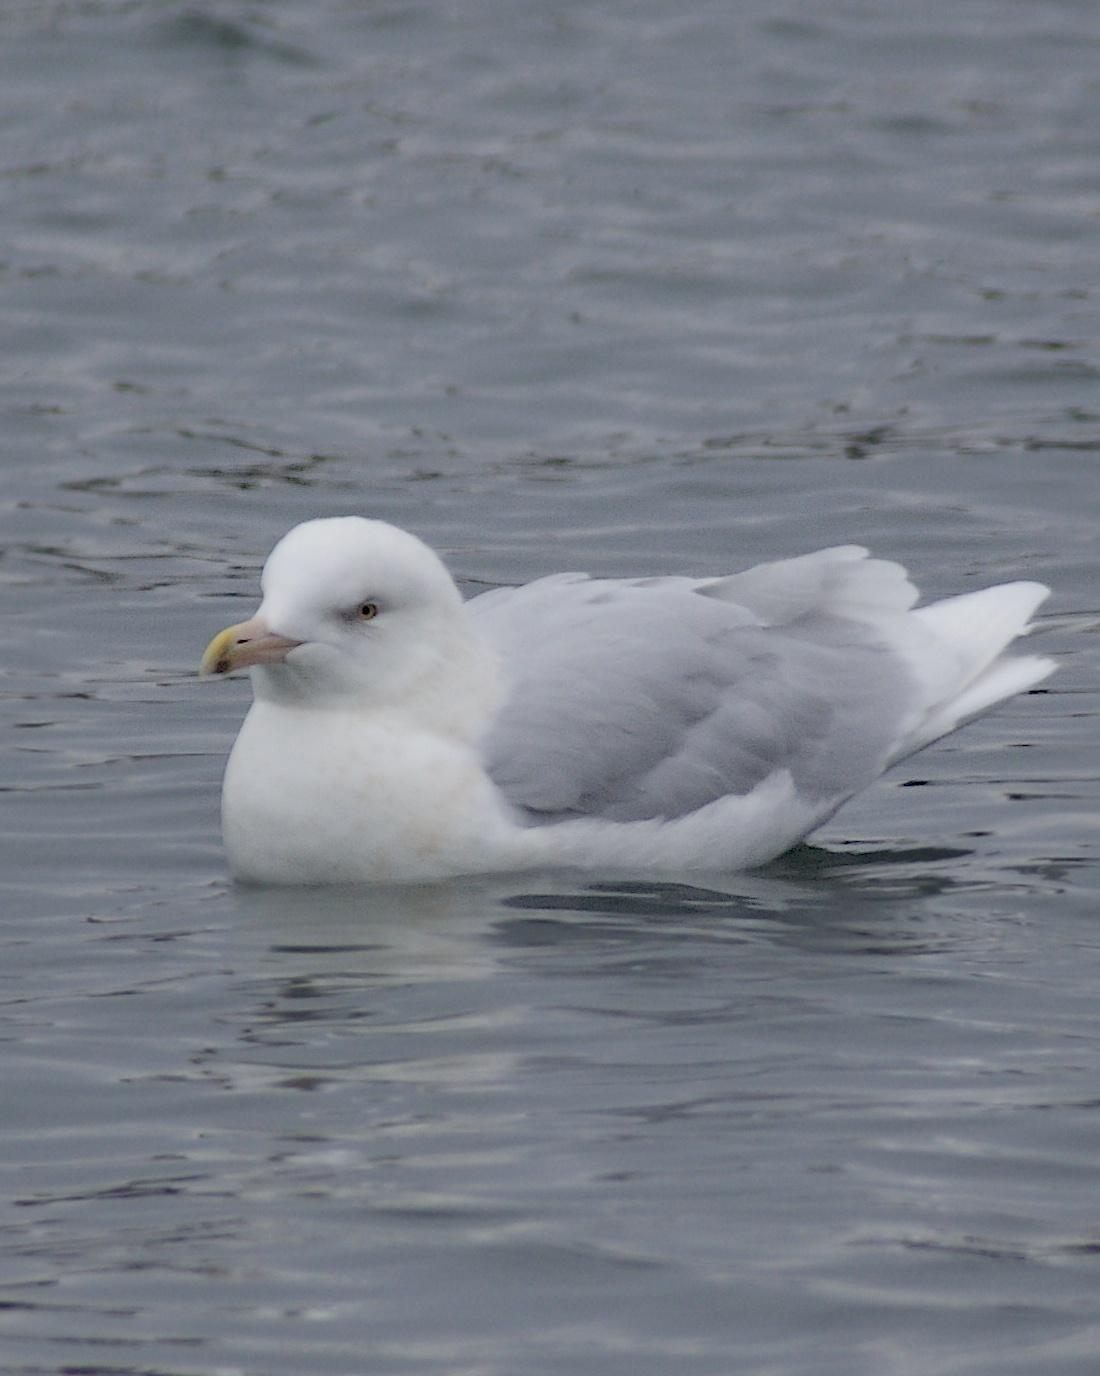 Glaucous Gull Photo by Gerald Hoekstra